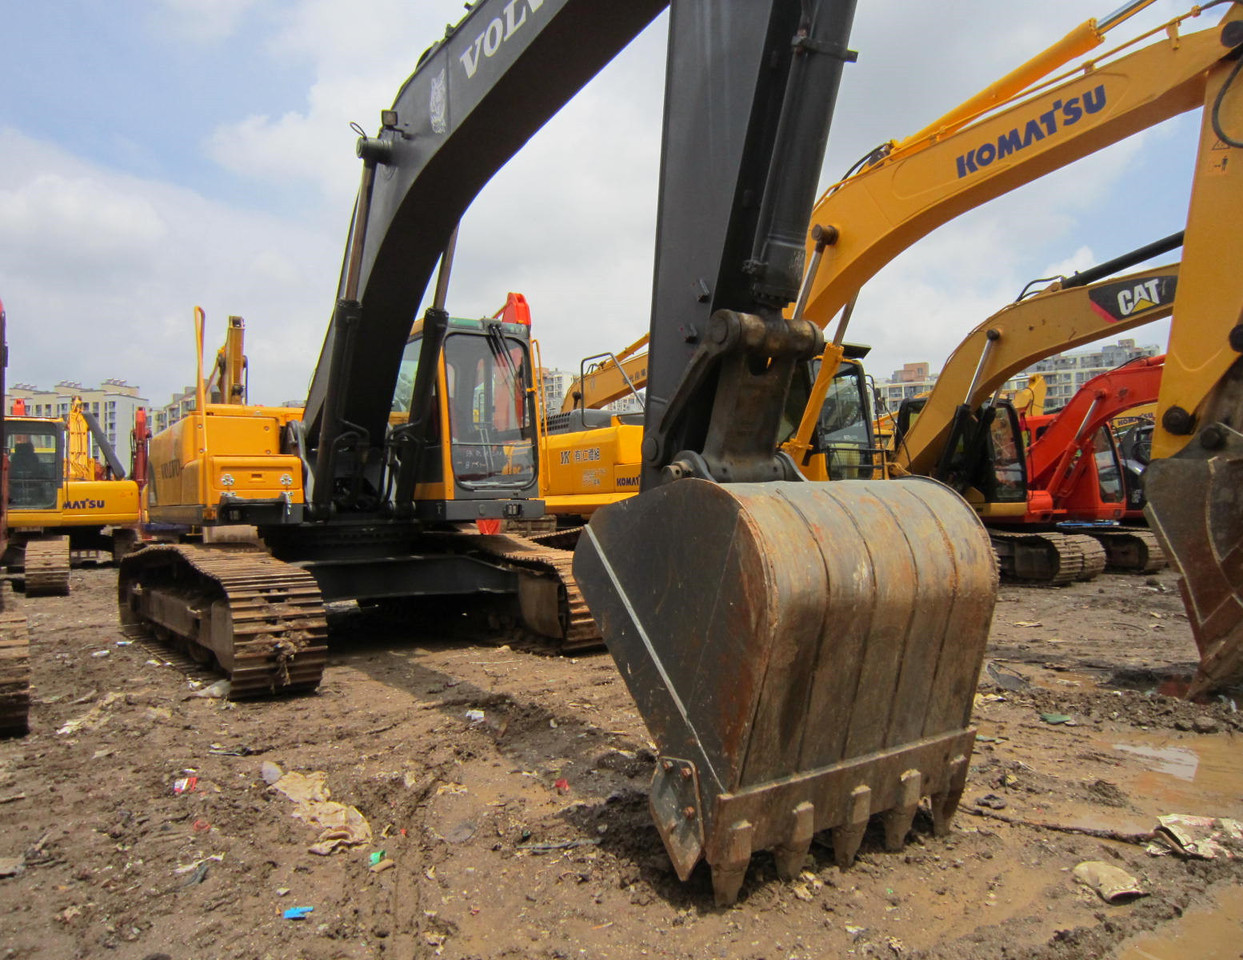 Volvo Ec290blc Crawler Excavator From China For Sale At Truck1 Id 3860958